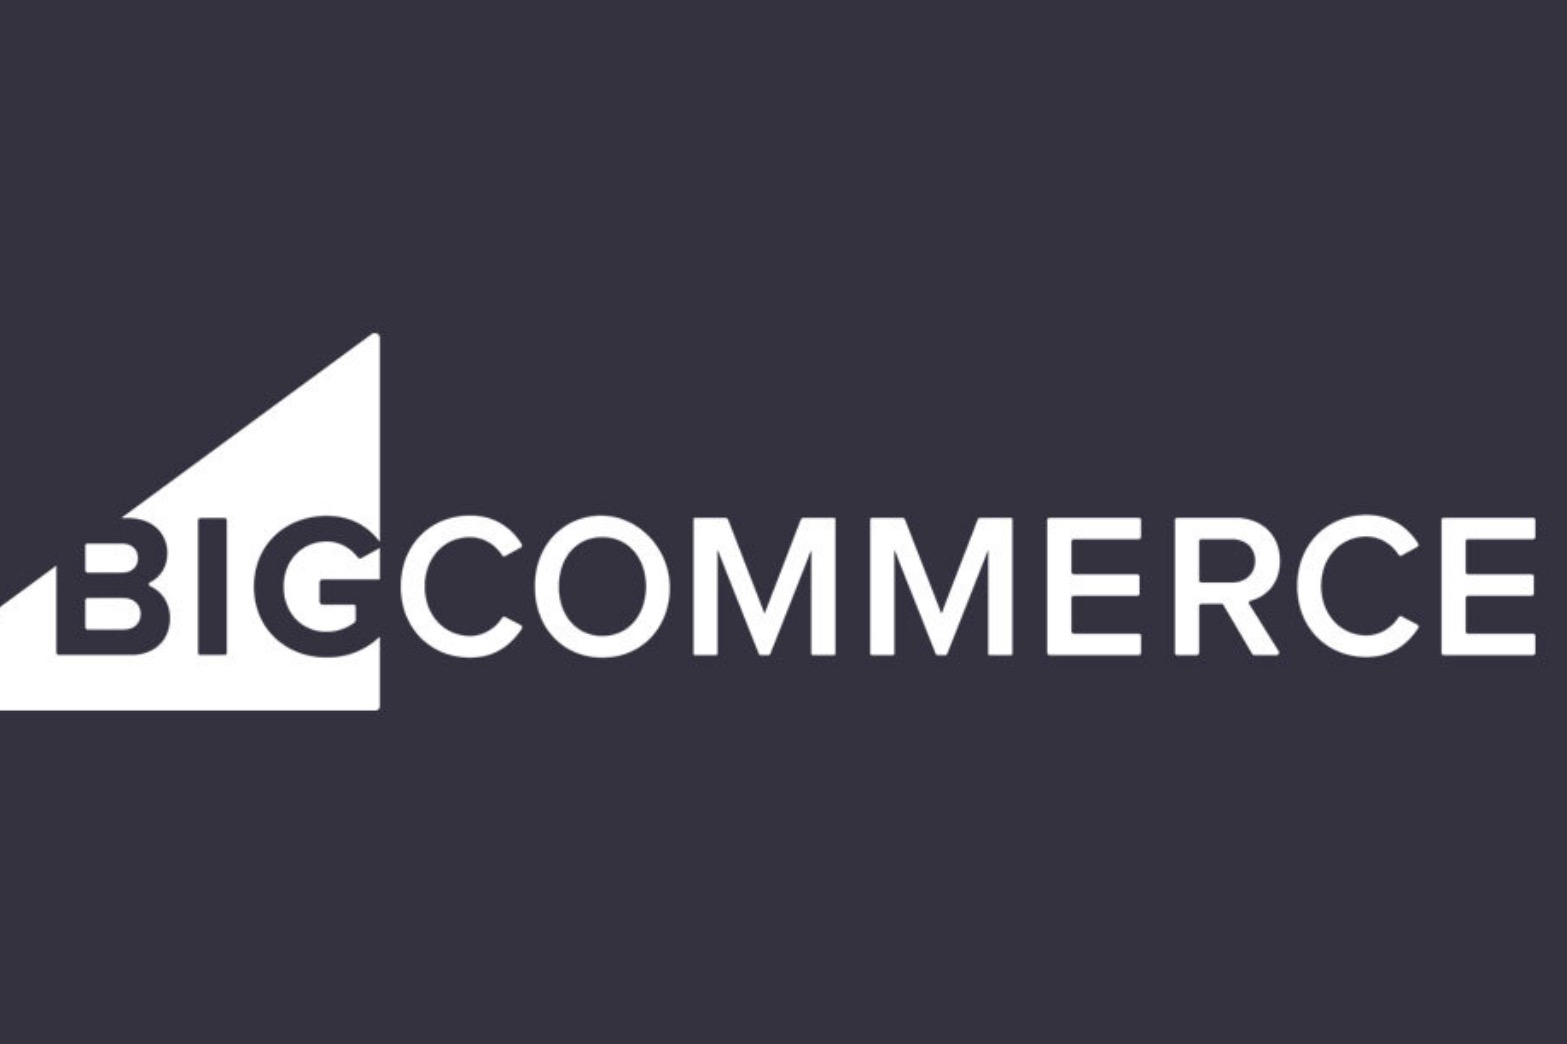 BigCommerce is getting bigger: $64m in new investment